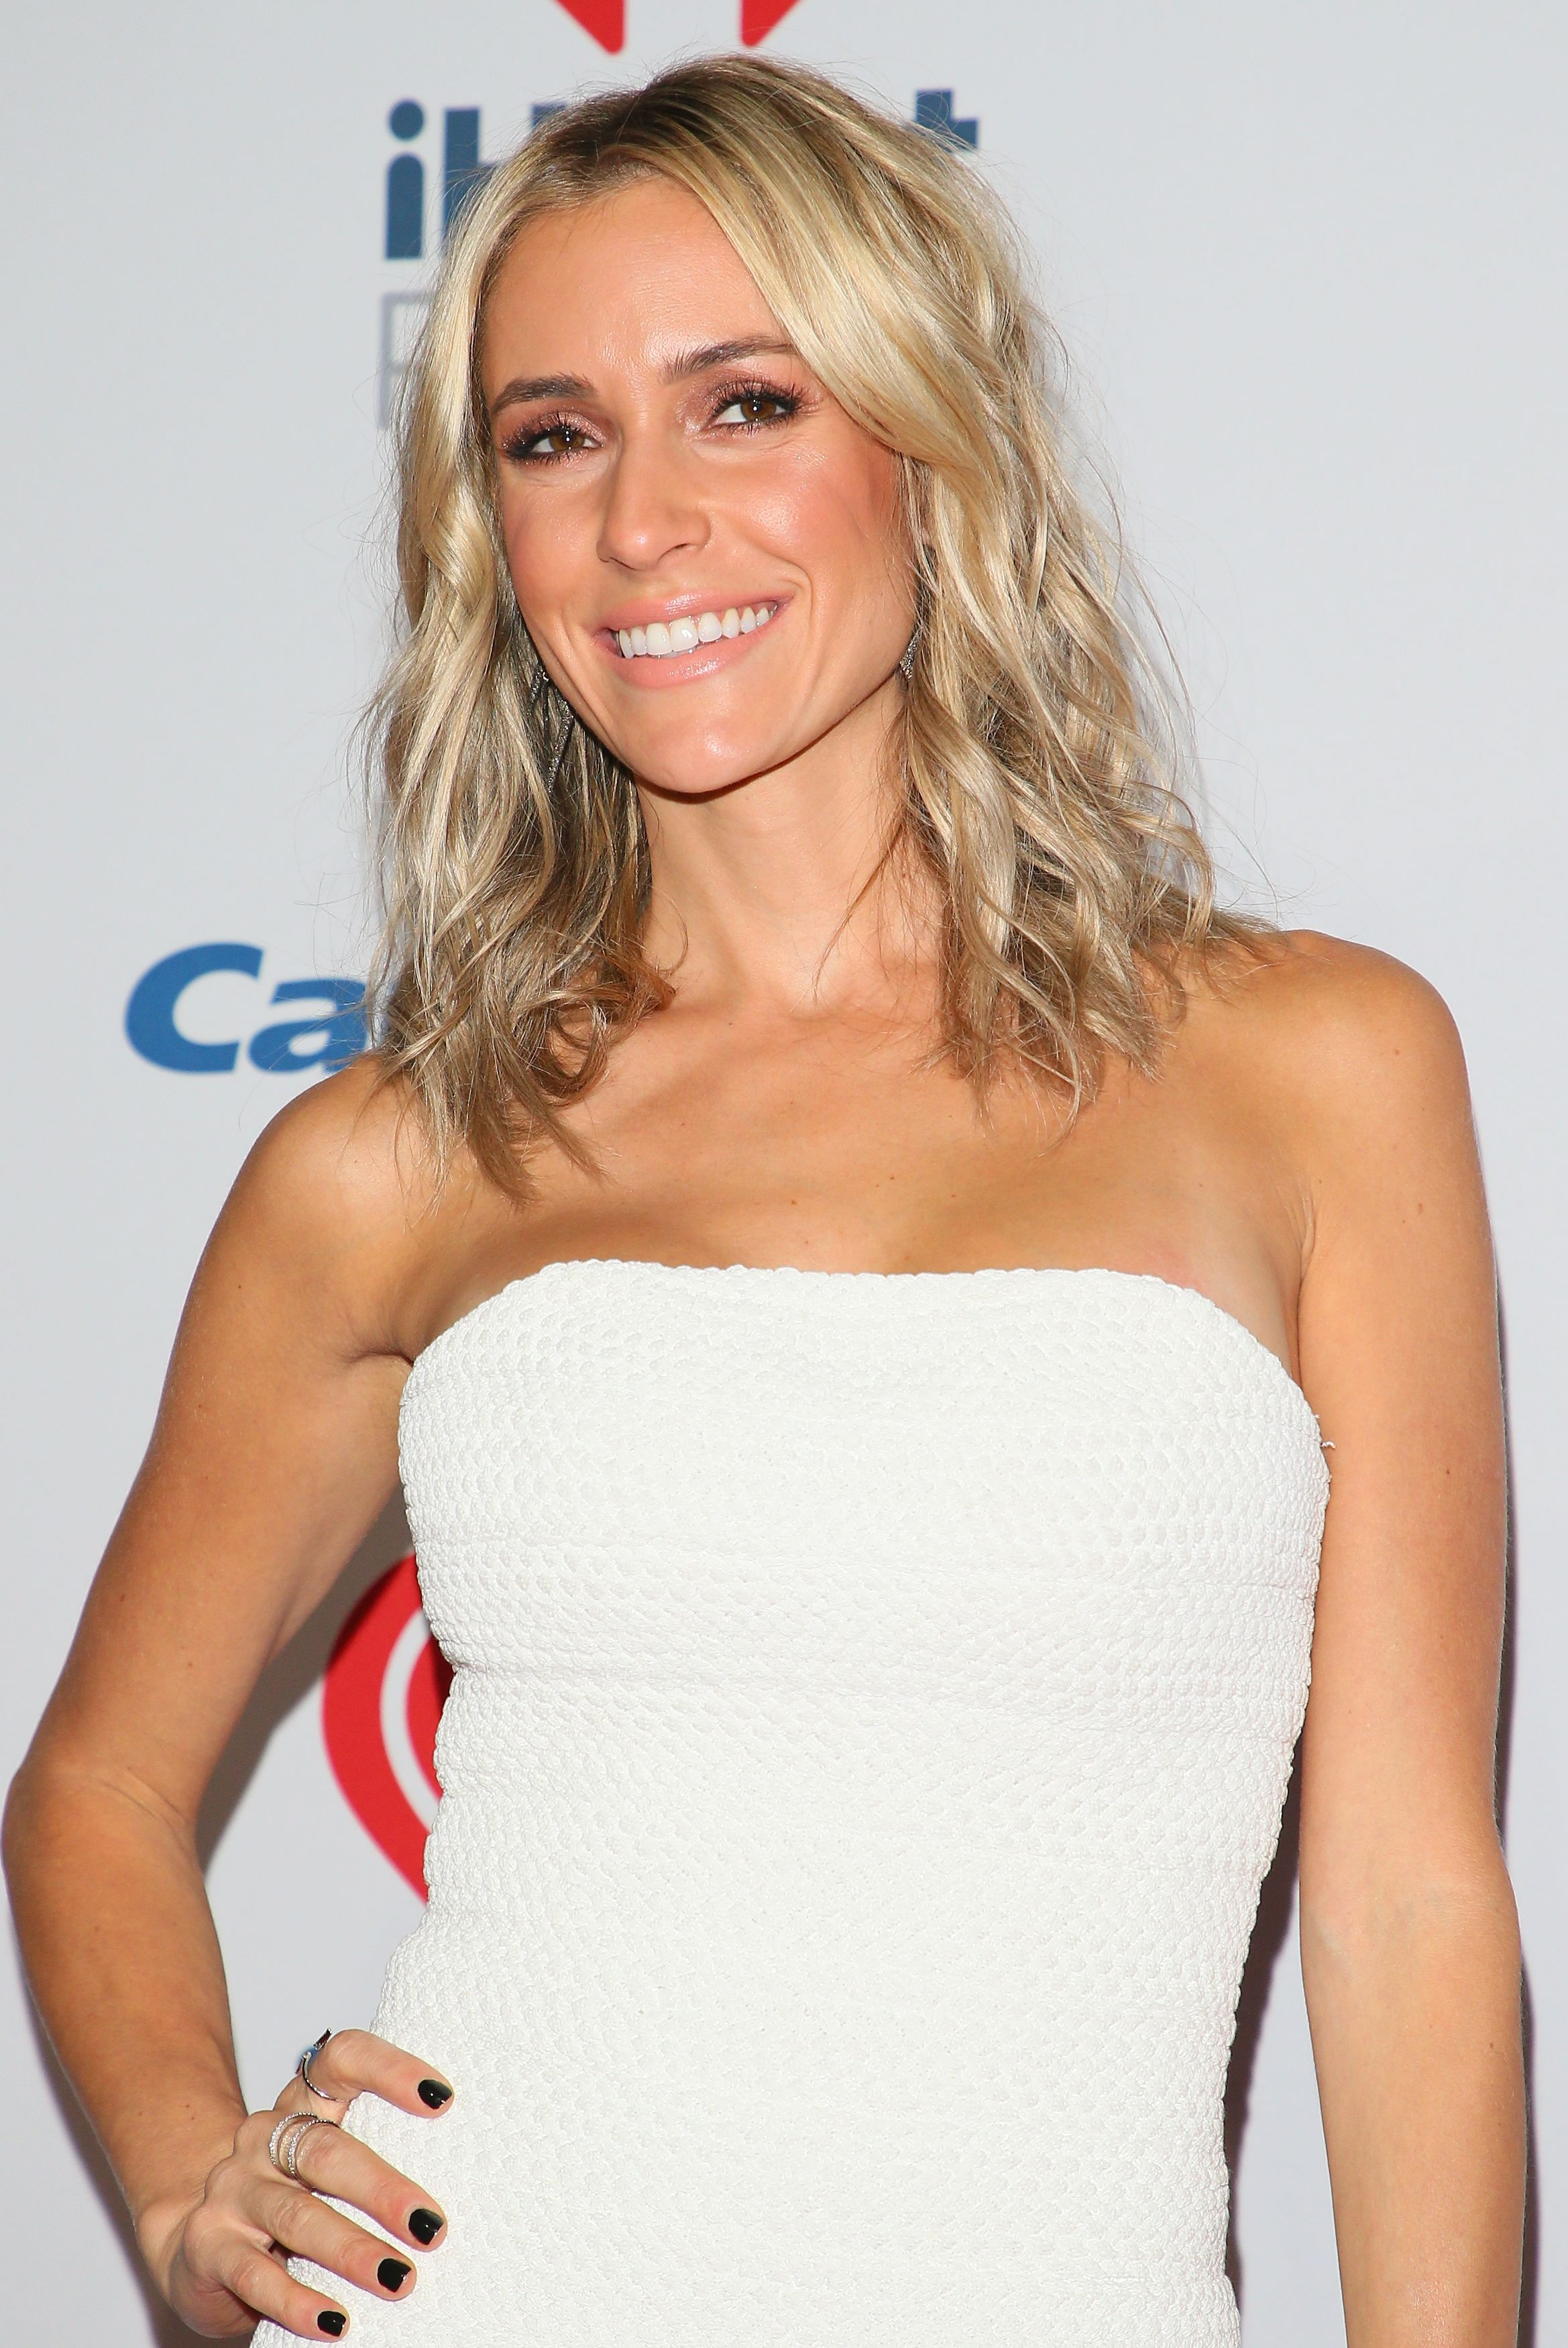 Medium Length Celebrity Hairstyles kristin cavallari